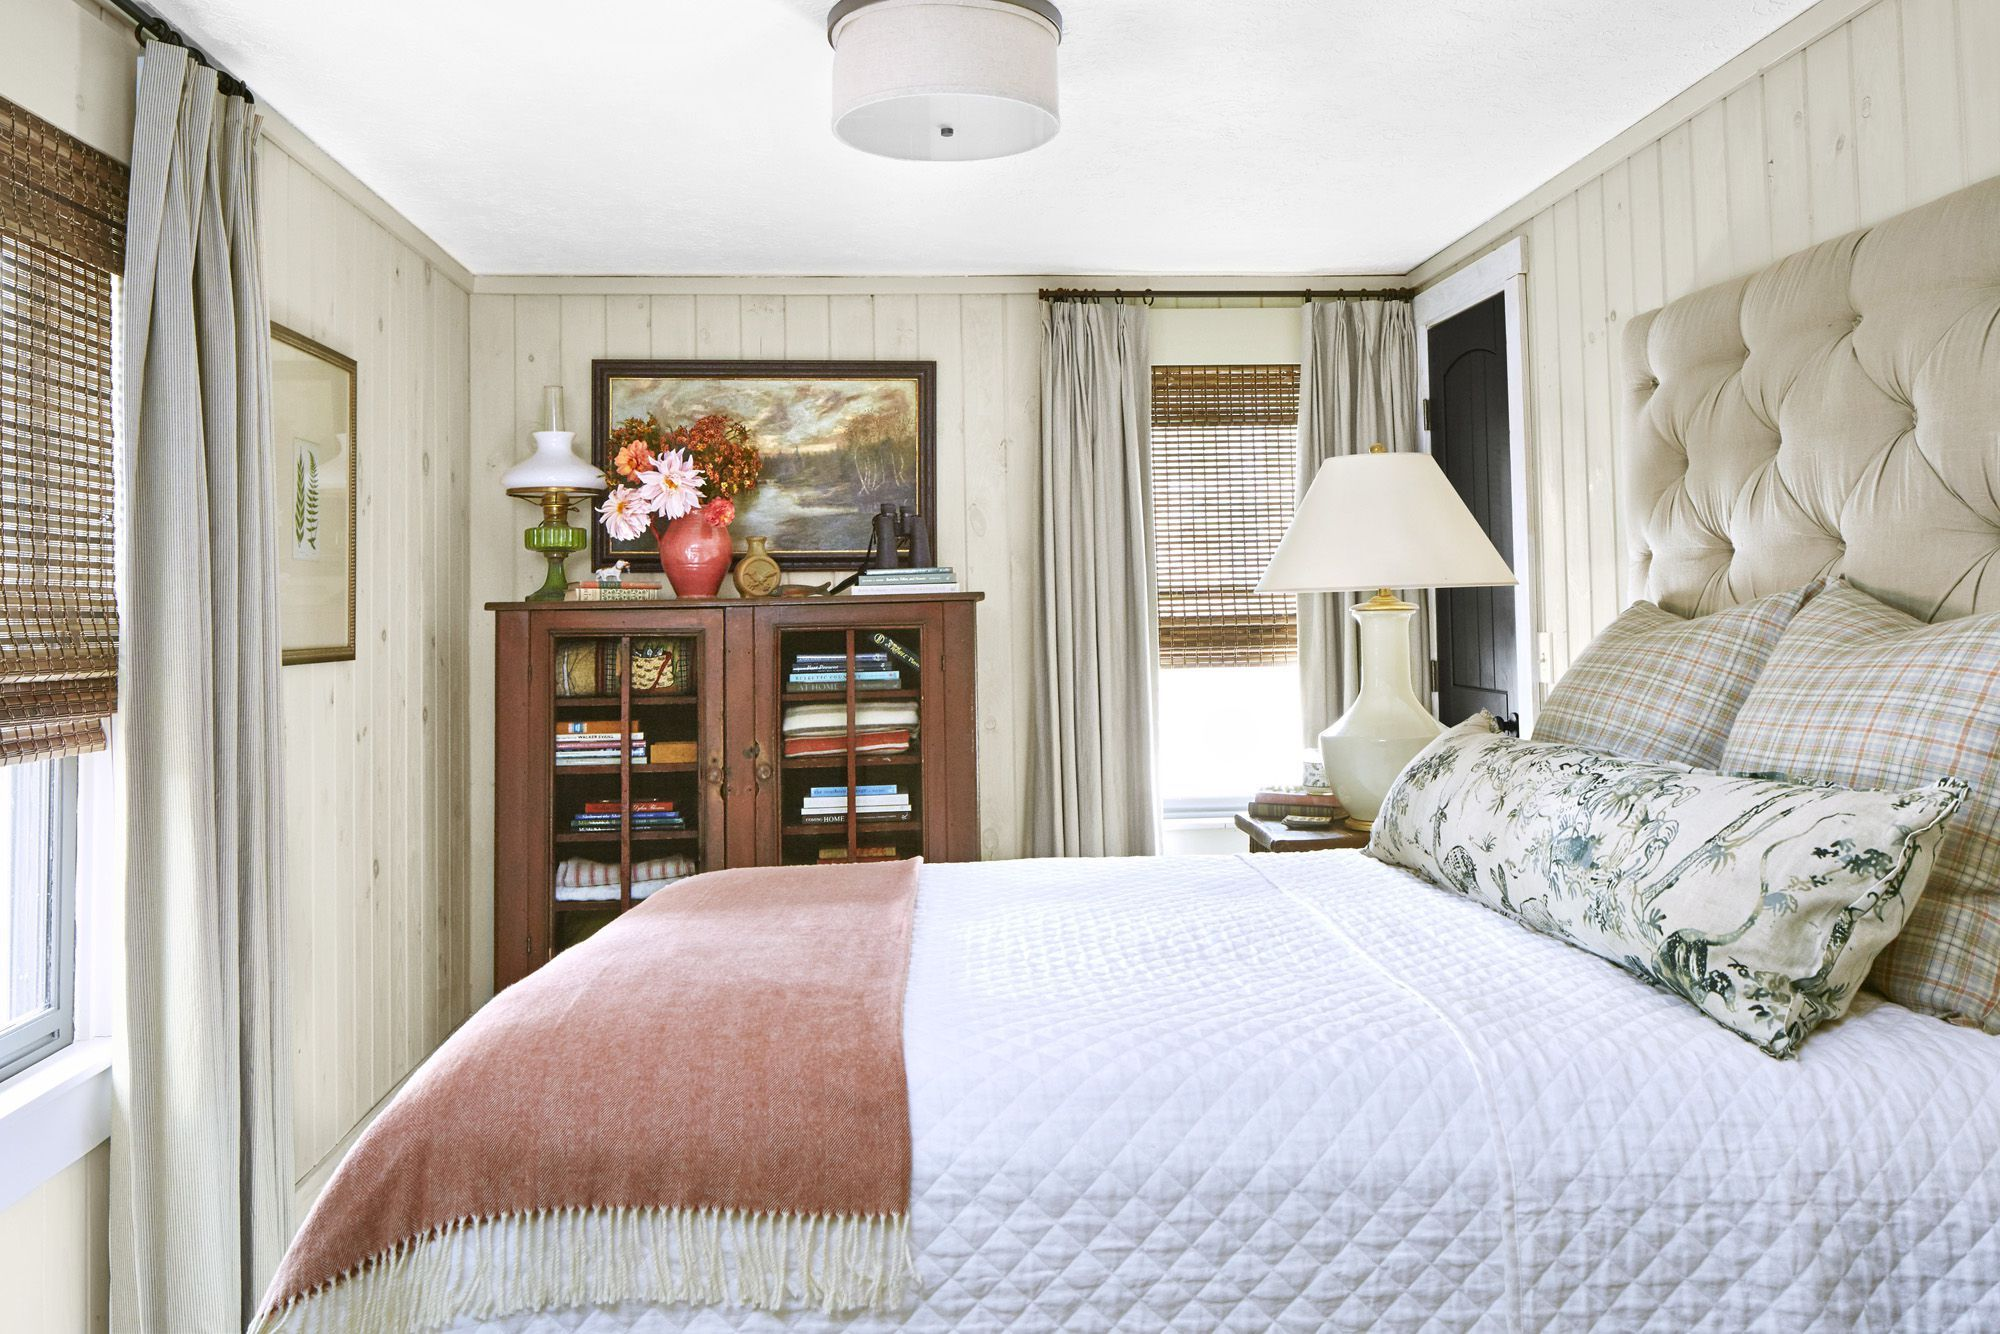 This Cozy Bedroom Décor Will Make You Want to Stay in Bed